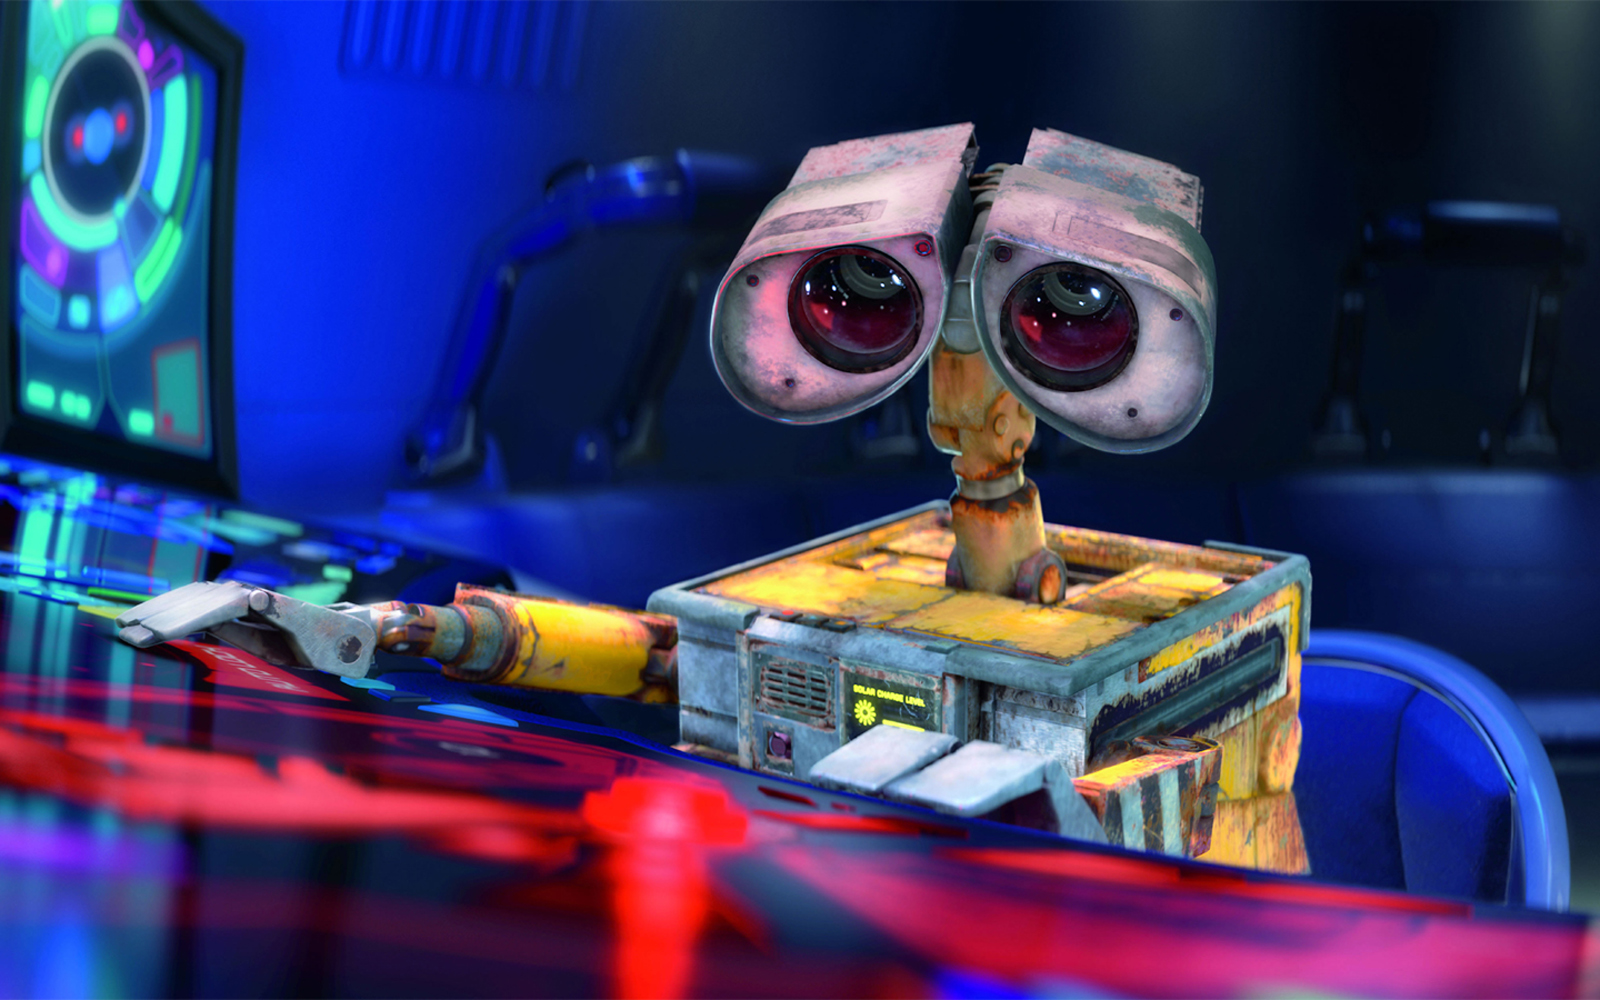 Robot 2 0 Movie Hd Wallpapers Download Free 1080p: WALL-E 3D Movie HD Wallpapers